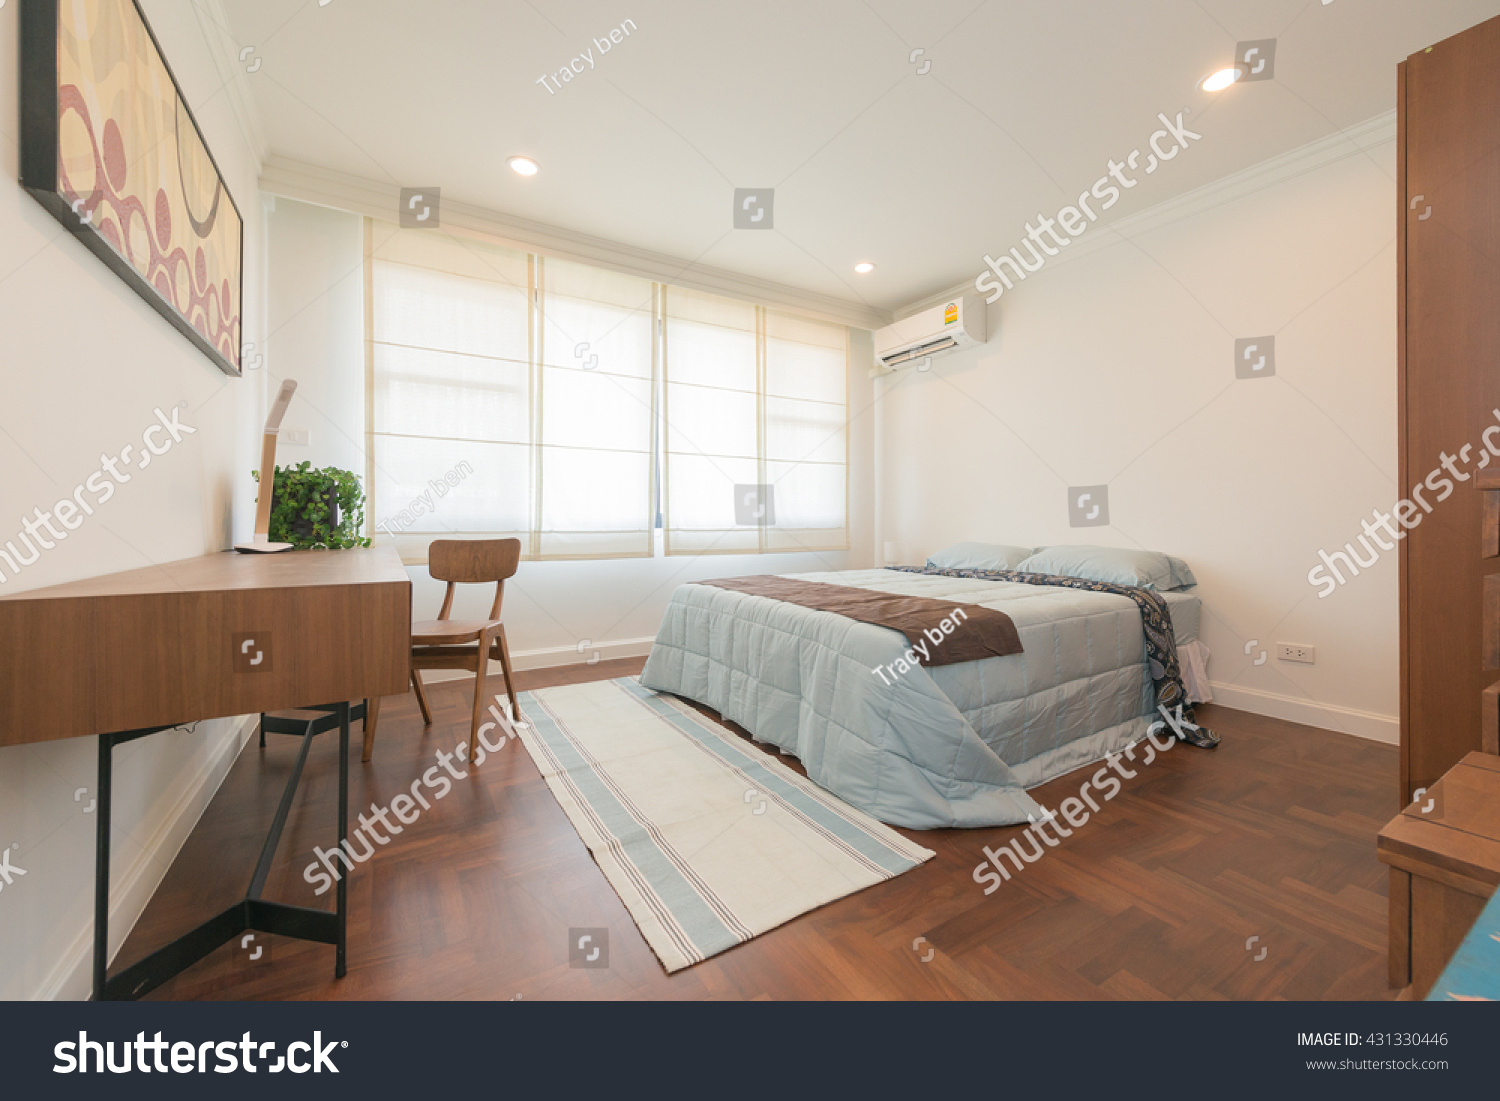 Interior bedroom modern design stock photo 431330446 shutterstock - Beautiful snooze bedroom suites packing comfort in style ...